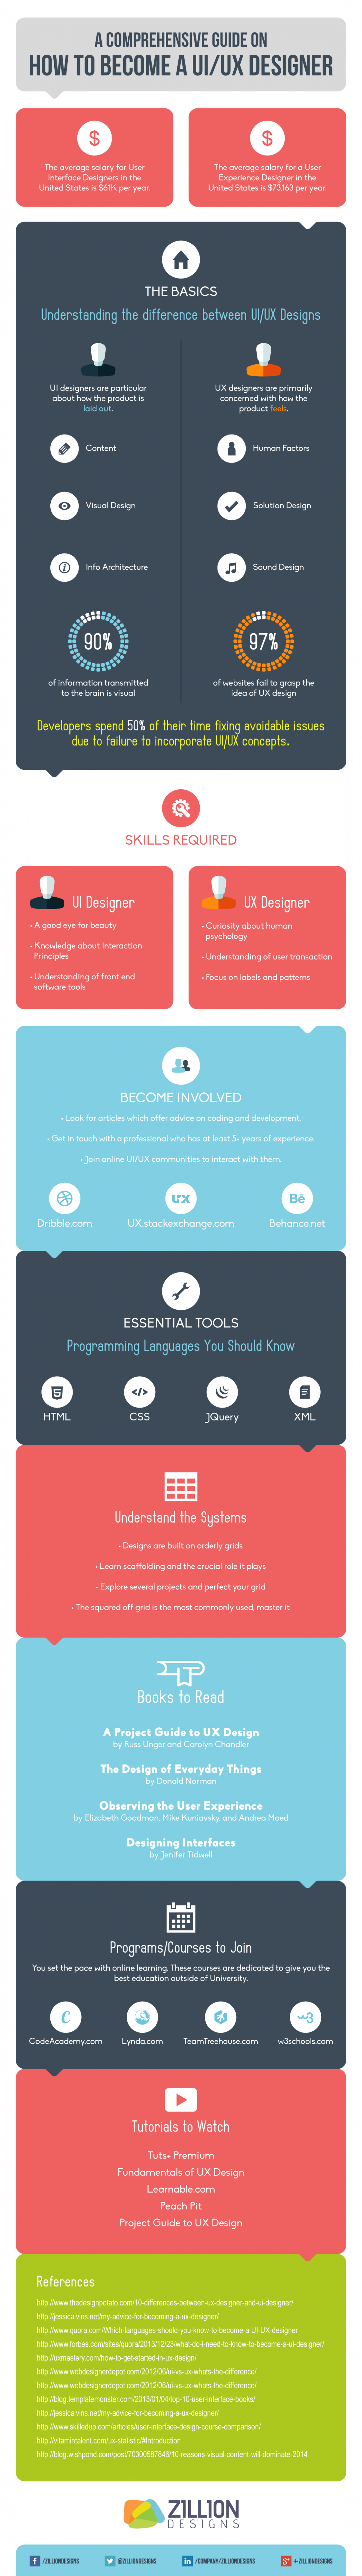 How to Become a UI/UX Designer Infographic